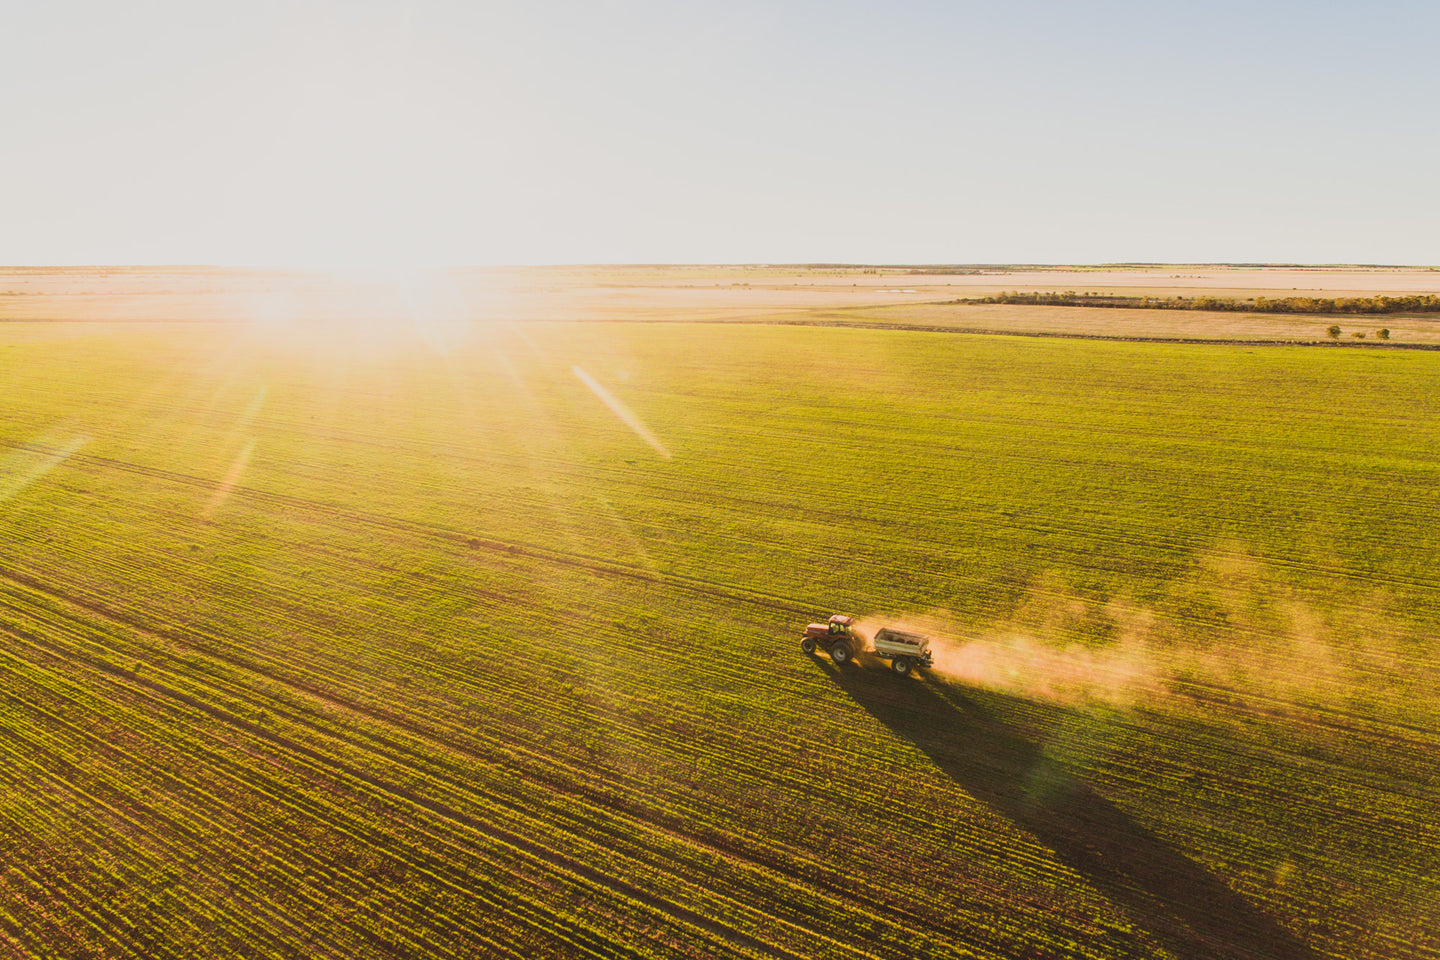 Tractor spreading urea across a paddock at golden hour